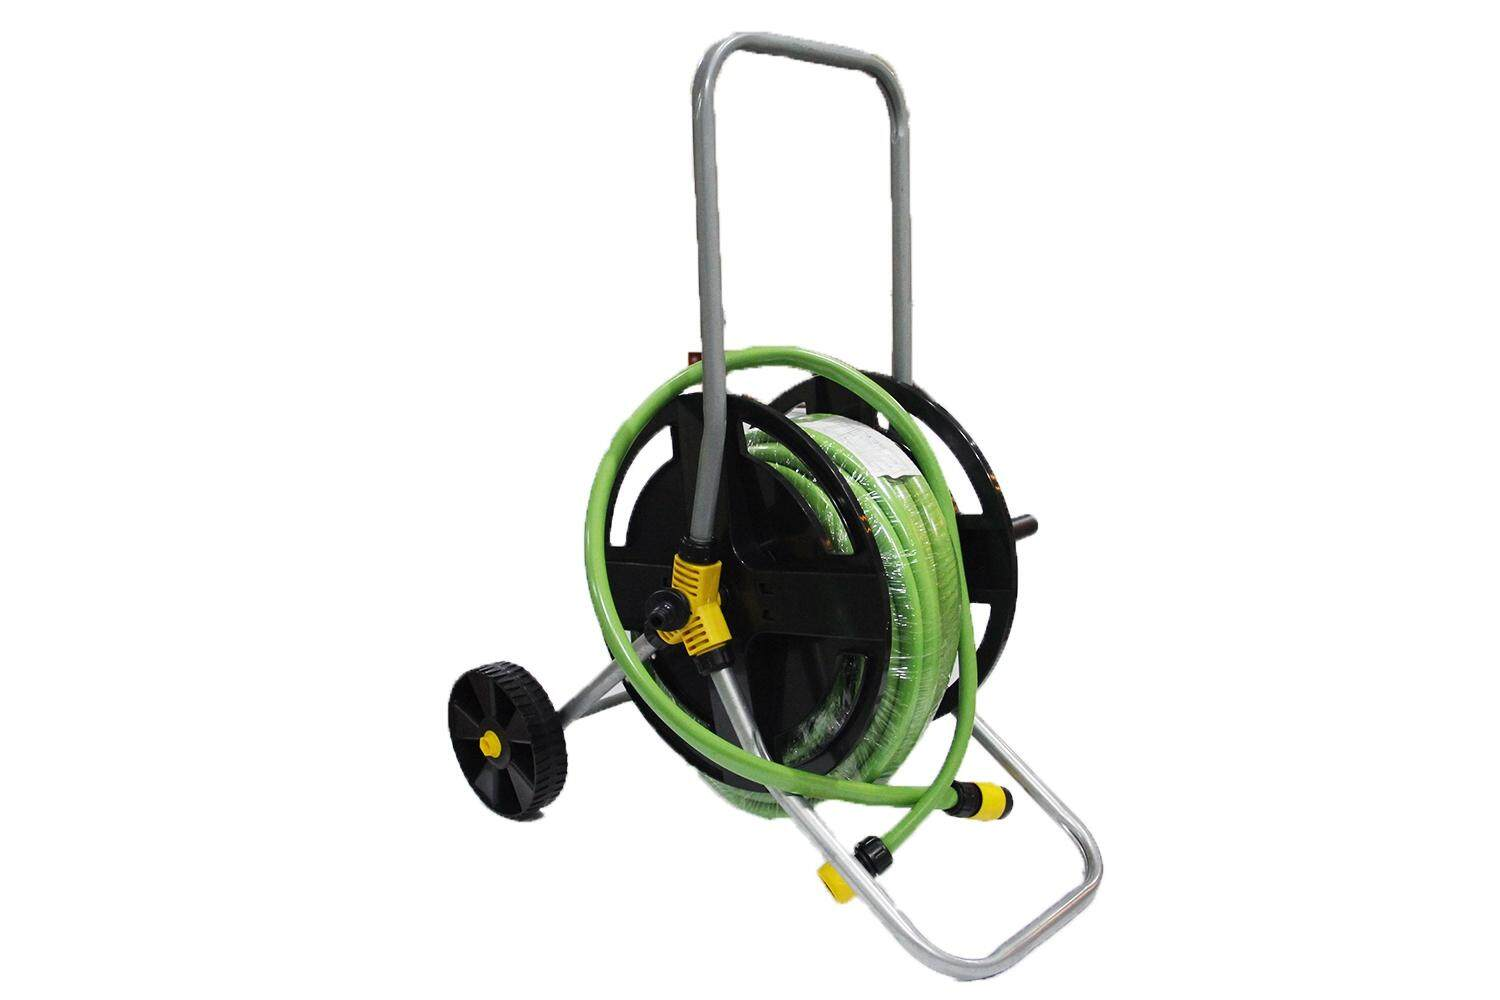 Winsir Deluxe Hose Reel Cart With 20m Hose